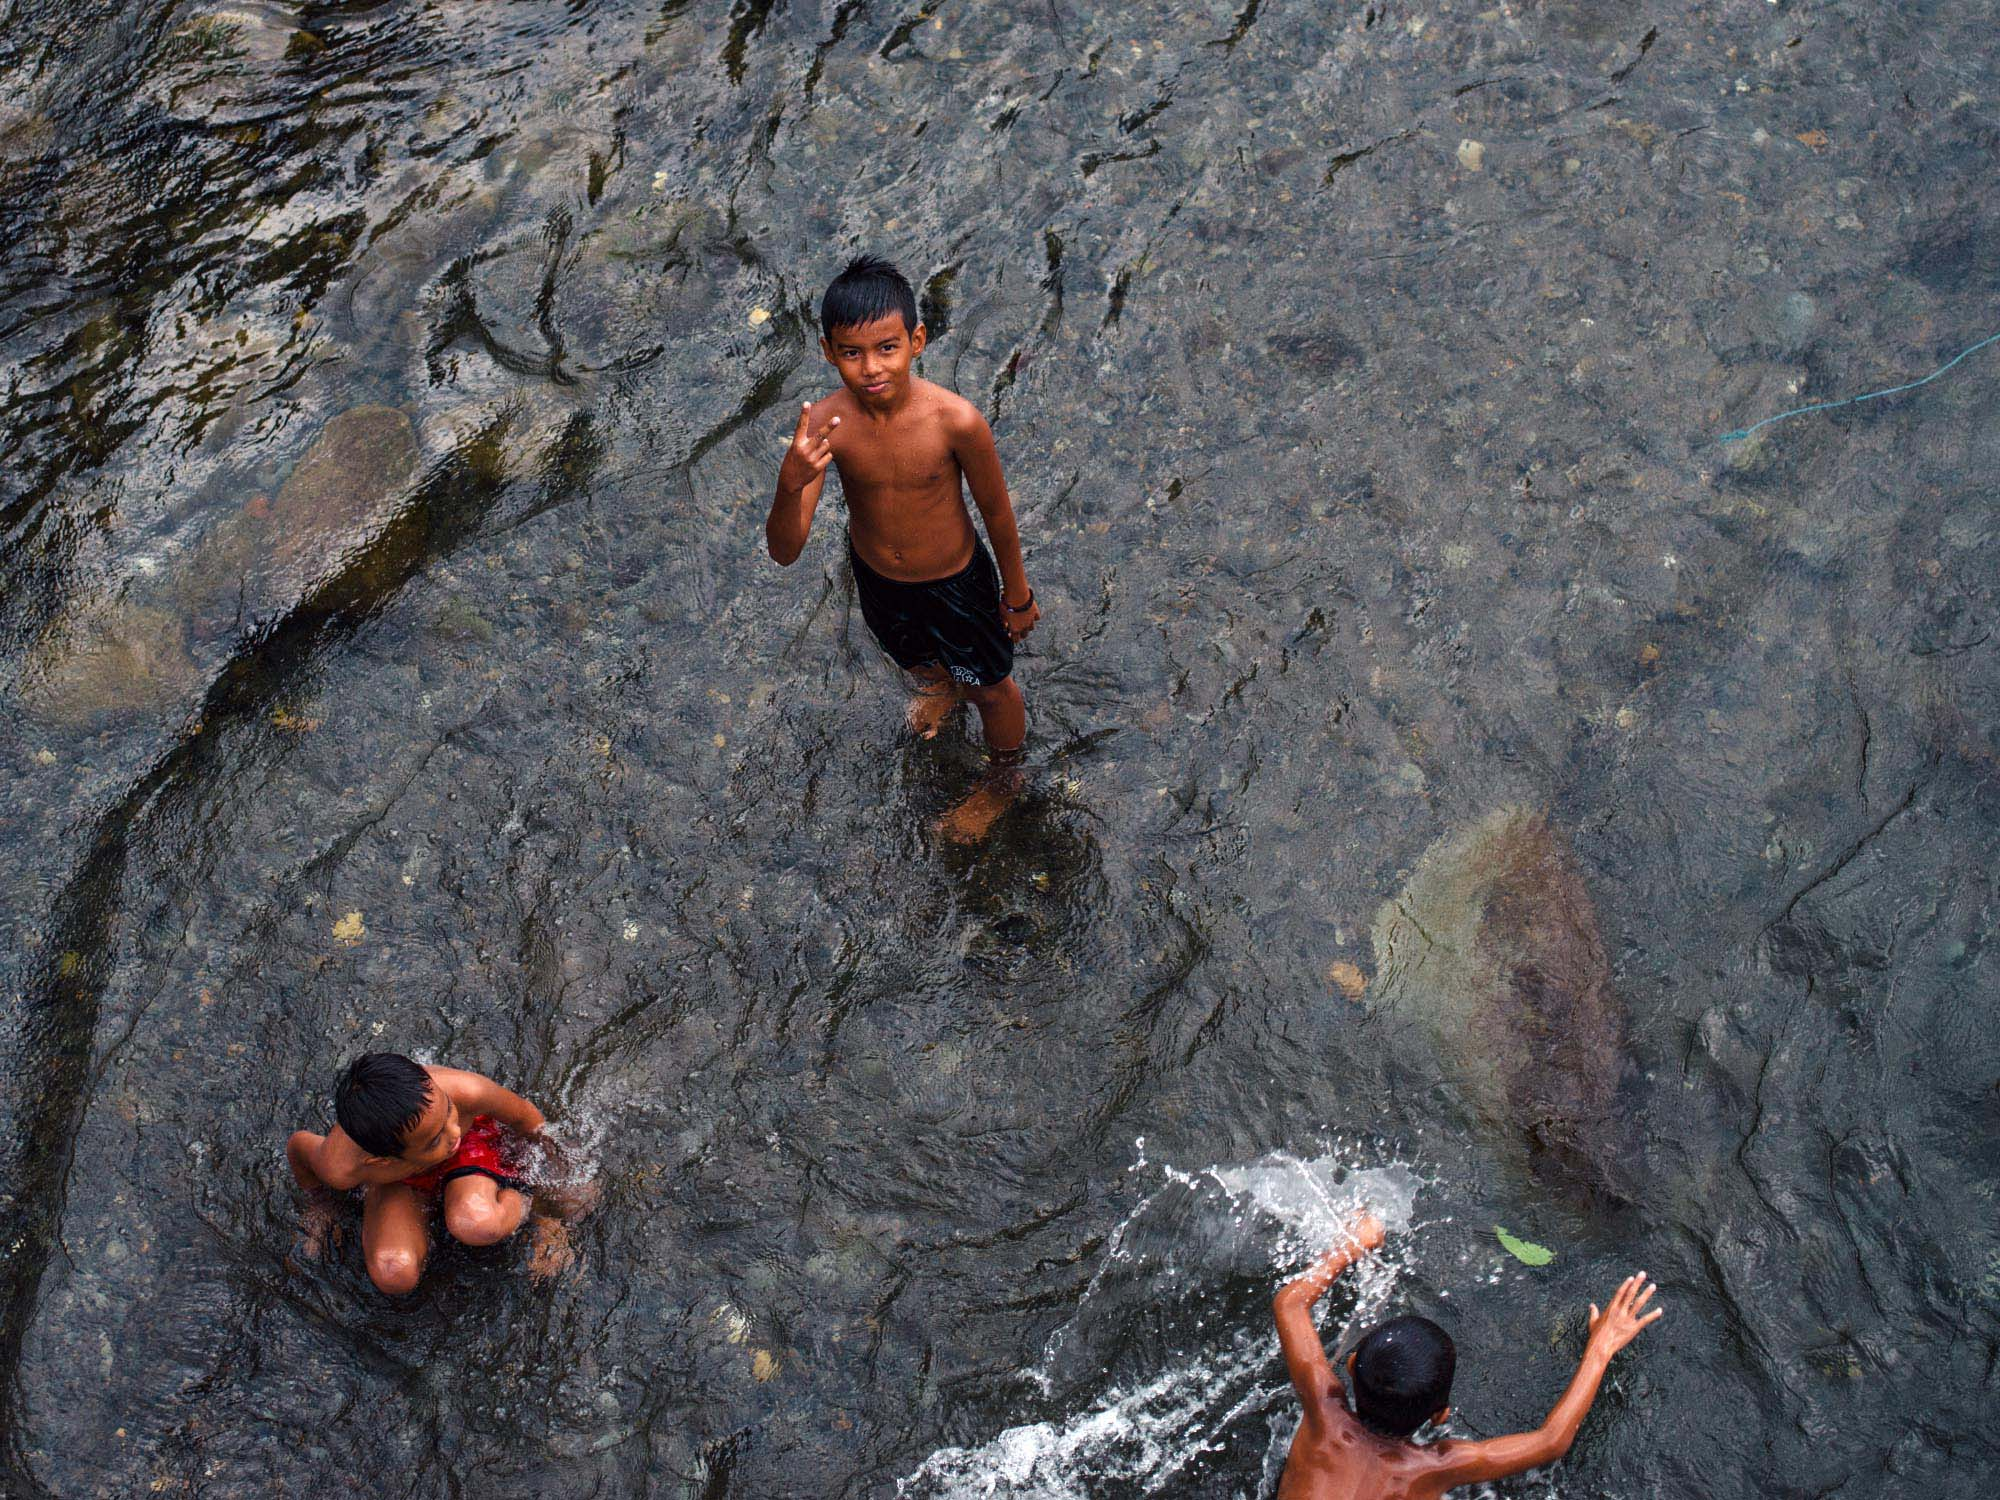 Kids playing in the river.